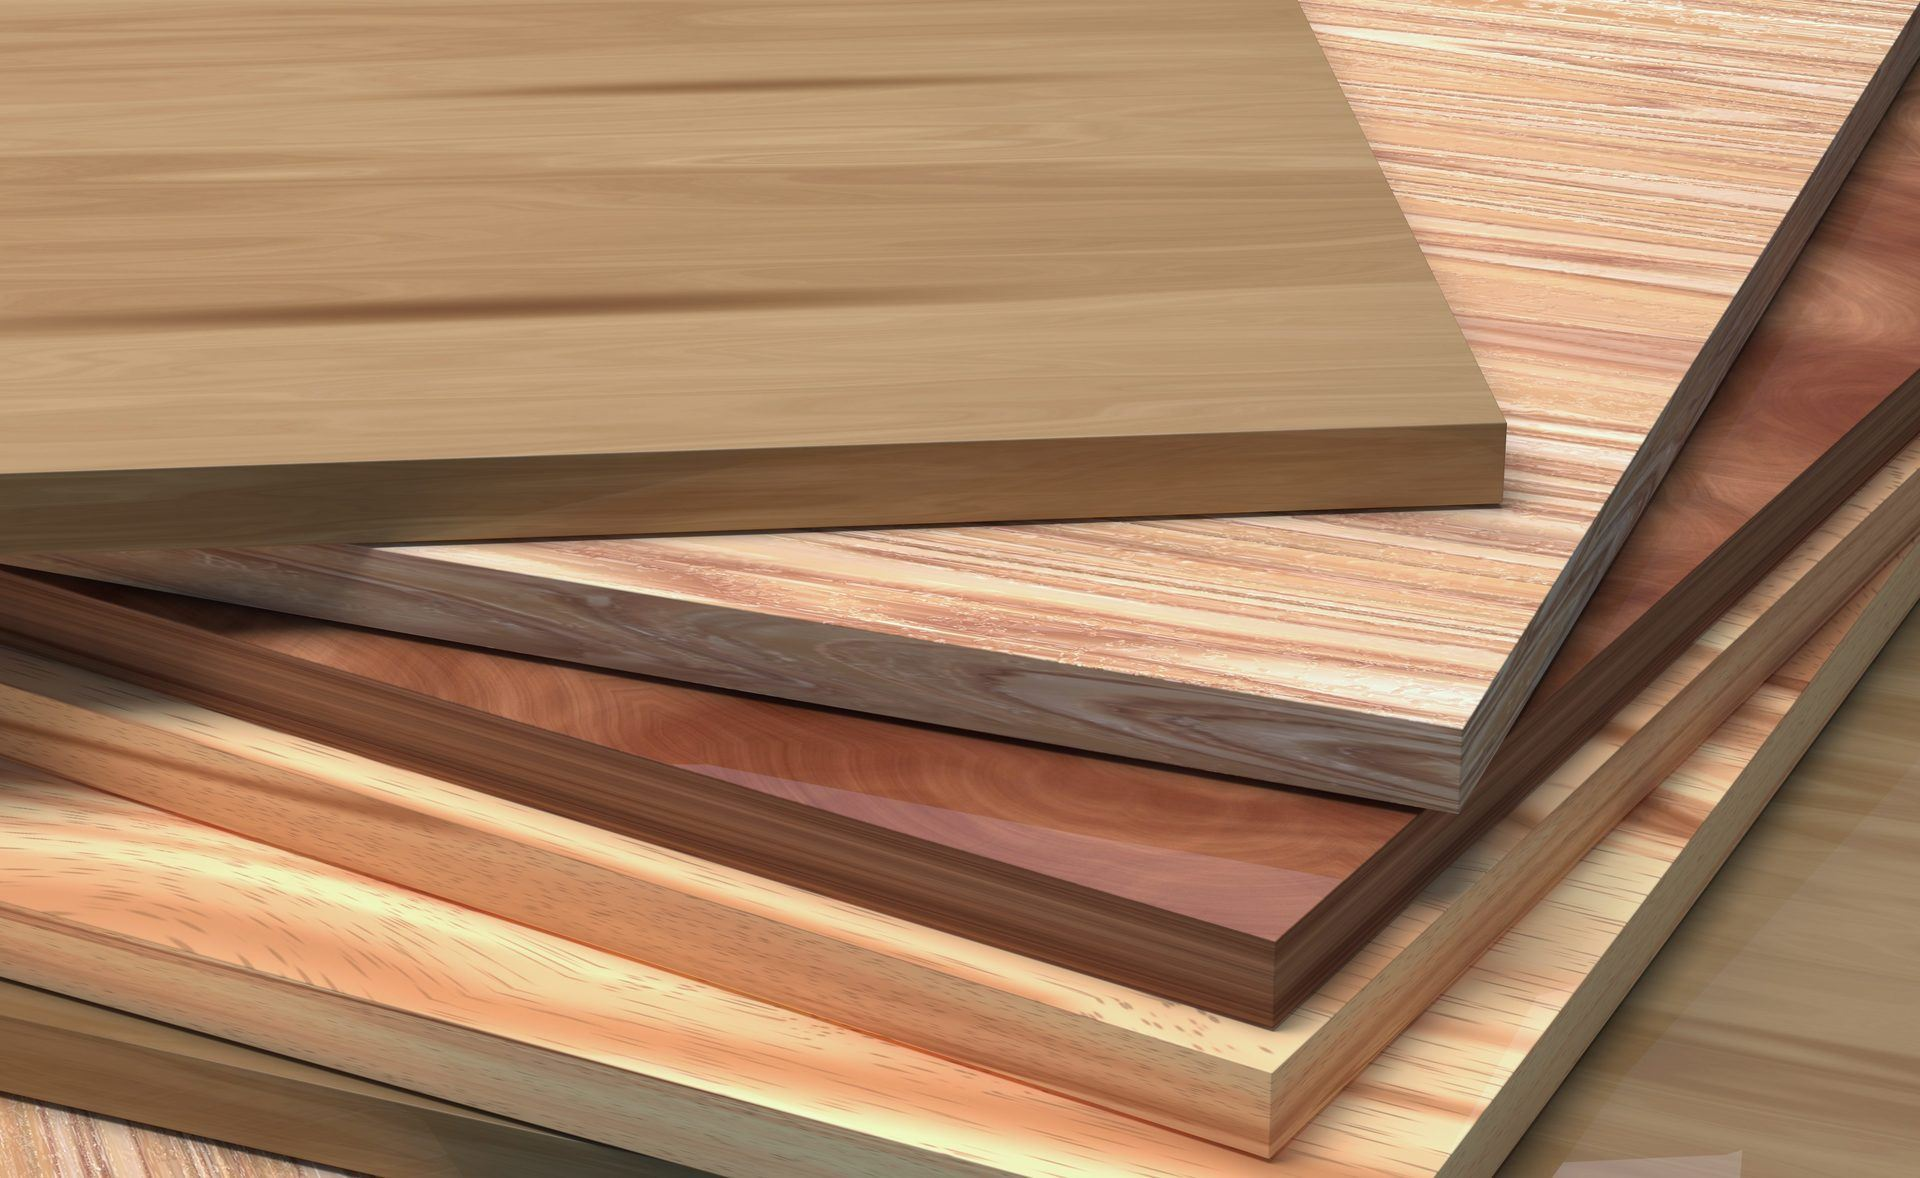 Perfect Finish Upholstery Matched Wood Veneer Edge Banding For The Perfect Finishing